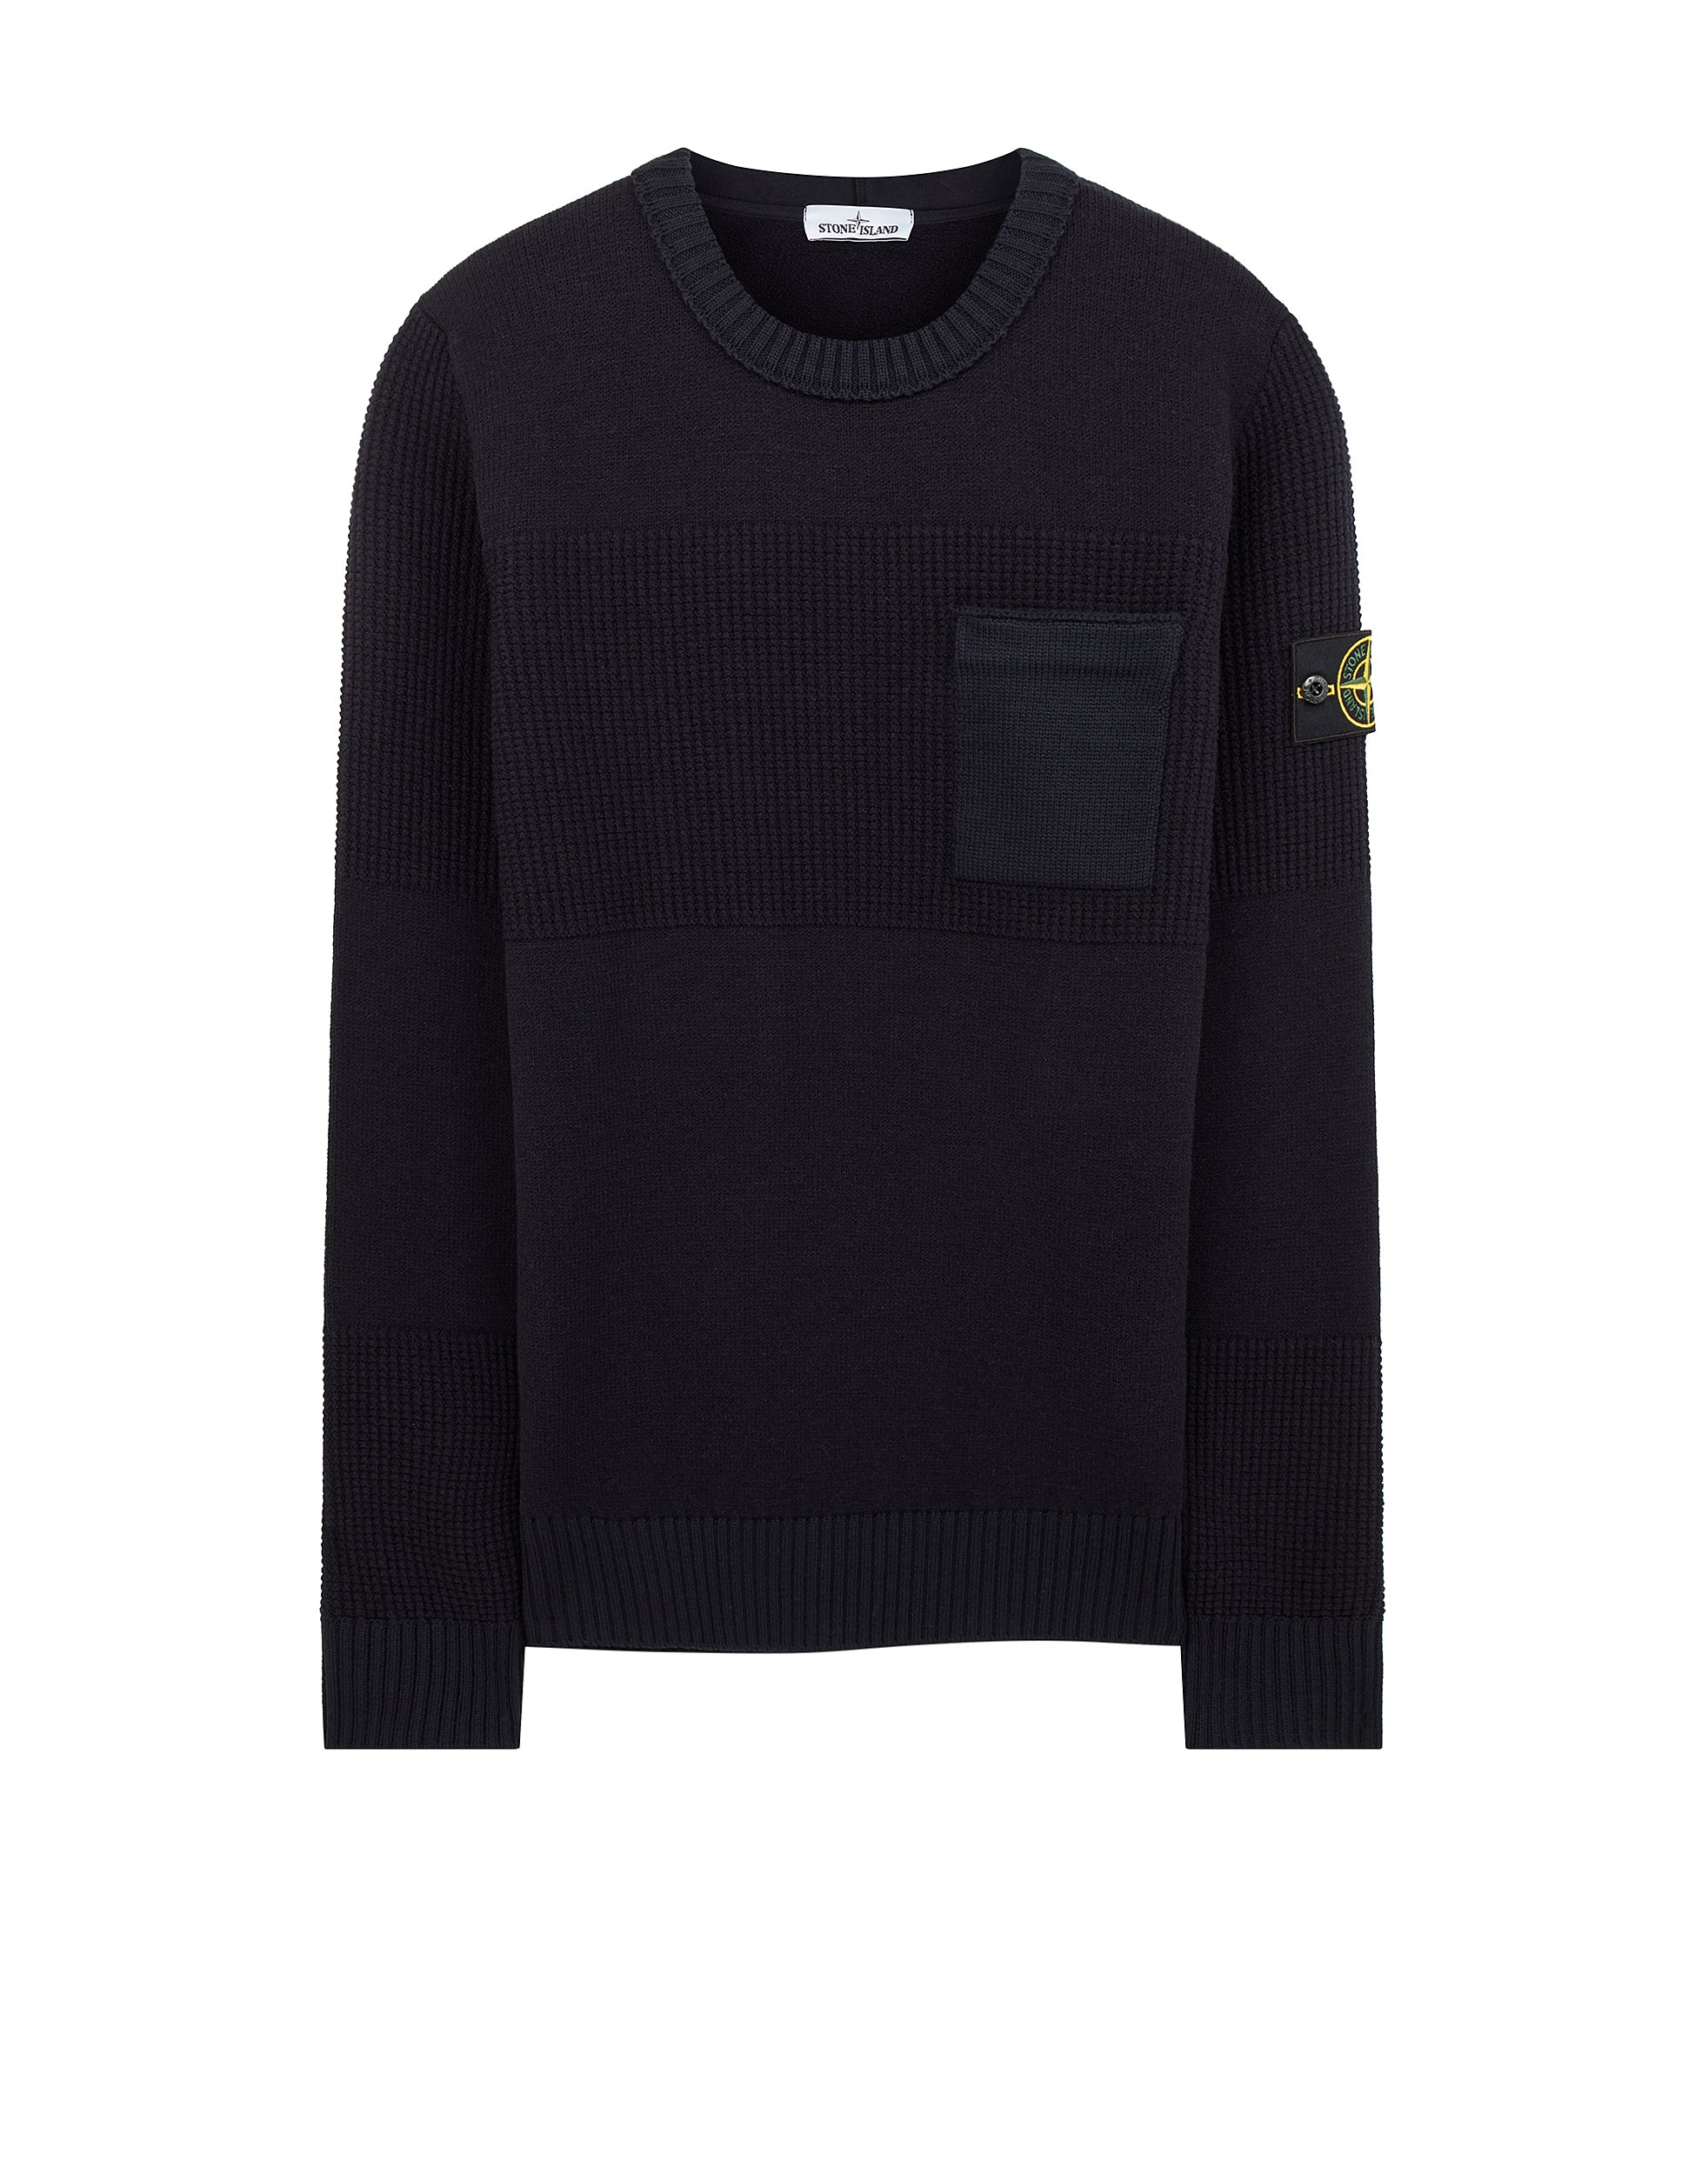 563A2 Wool Pocket Sweatshirt in Navy Blue